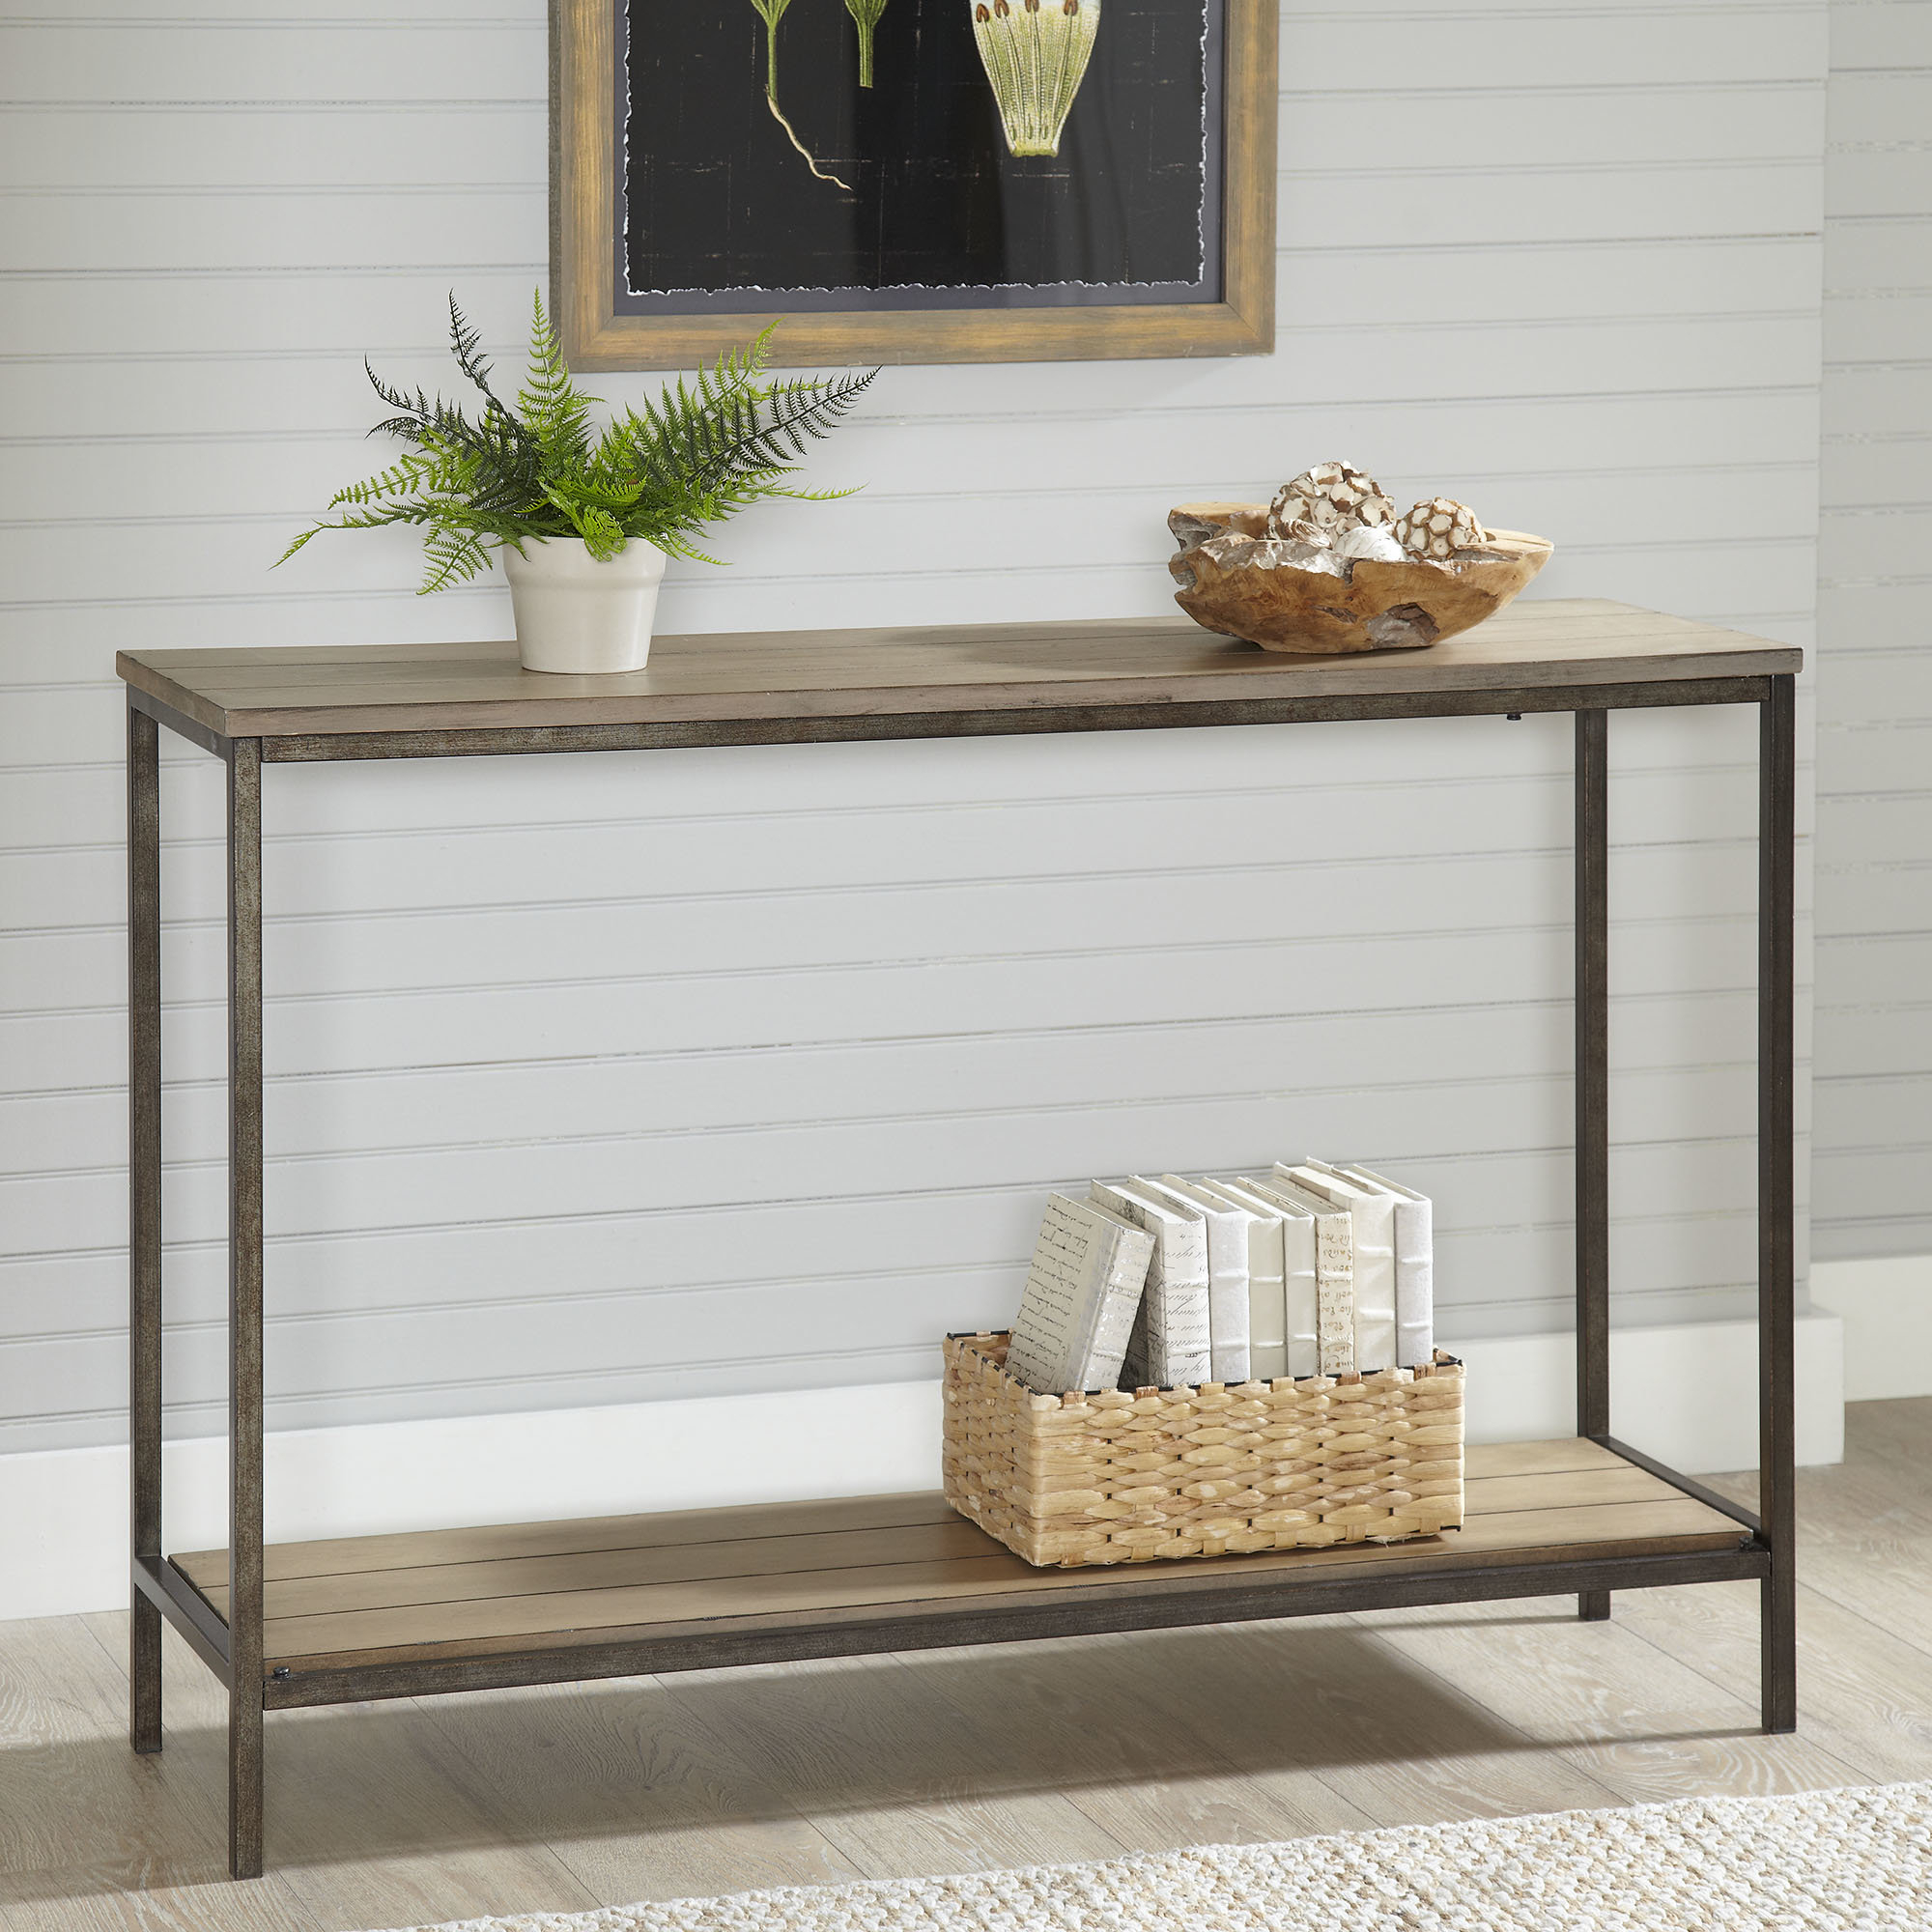 8 Inch Deep Console Table | Wayfair within Oscar 60 Inch Console Tables (Image 5 of 30)